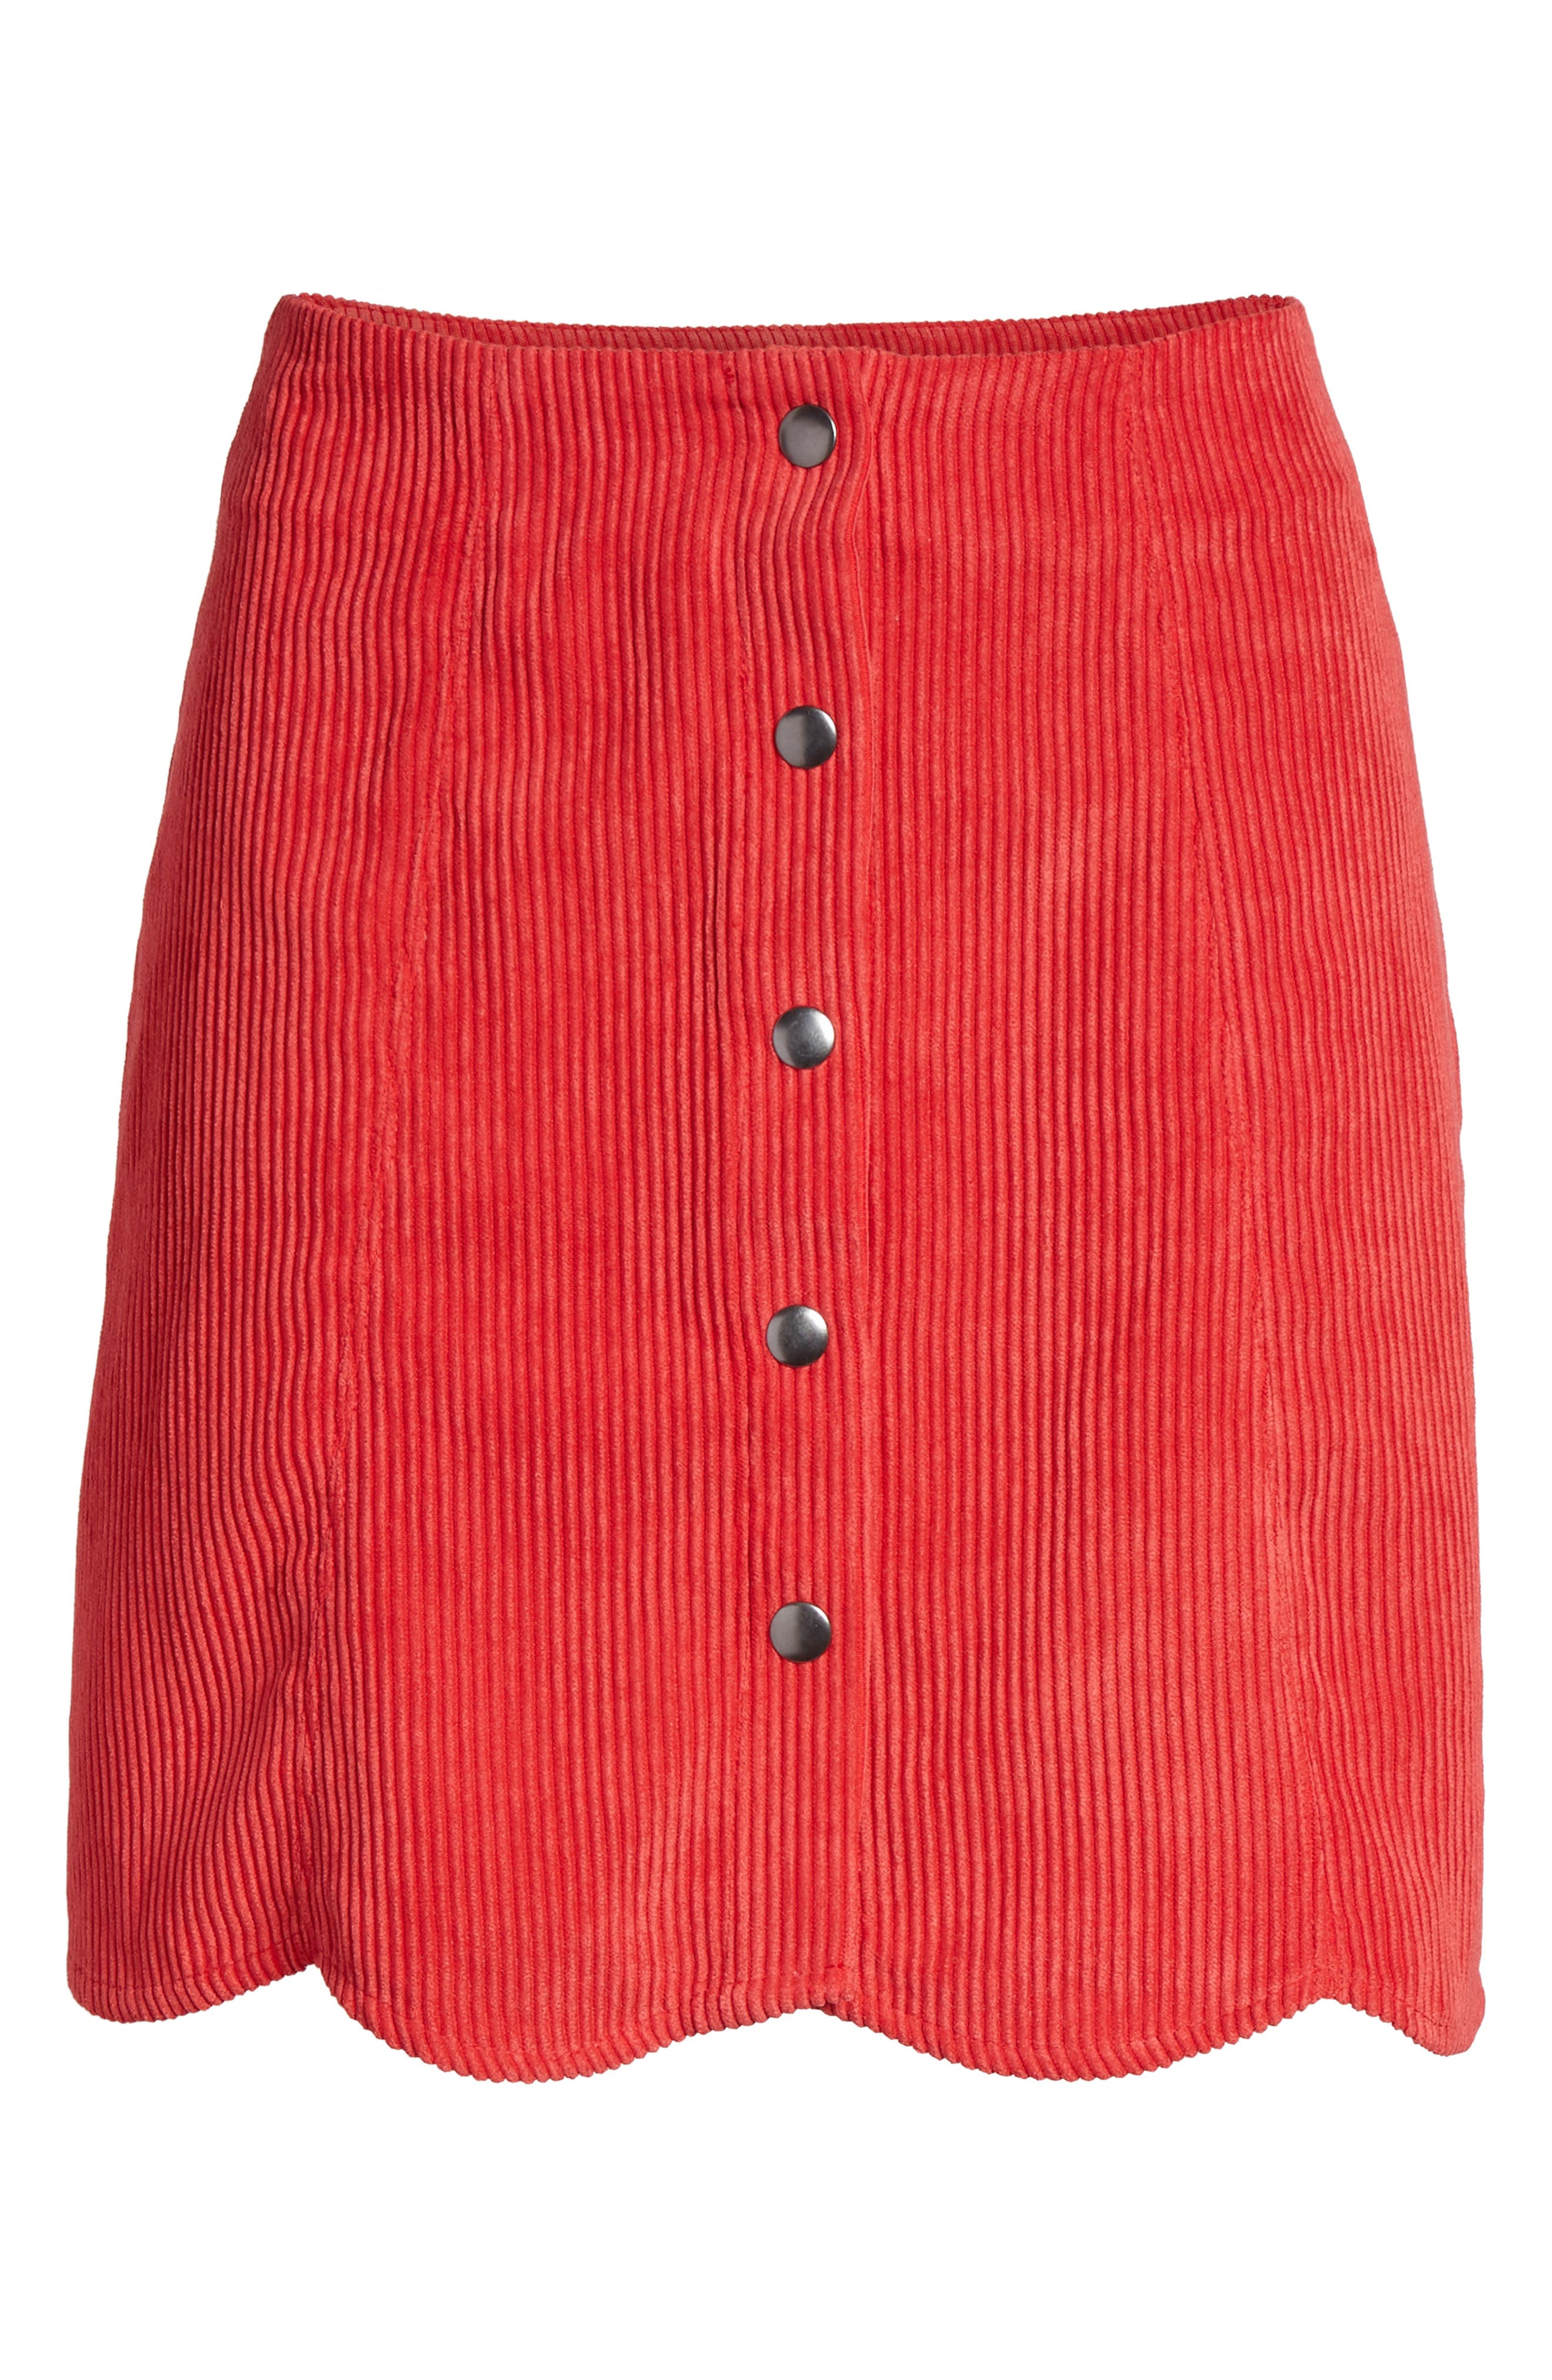 Central Corduroy Scallop Hem Skirt,                             Alternate thumbnail 6, color,                             Red